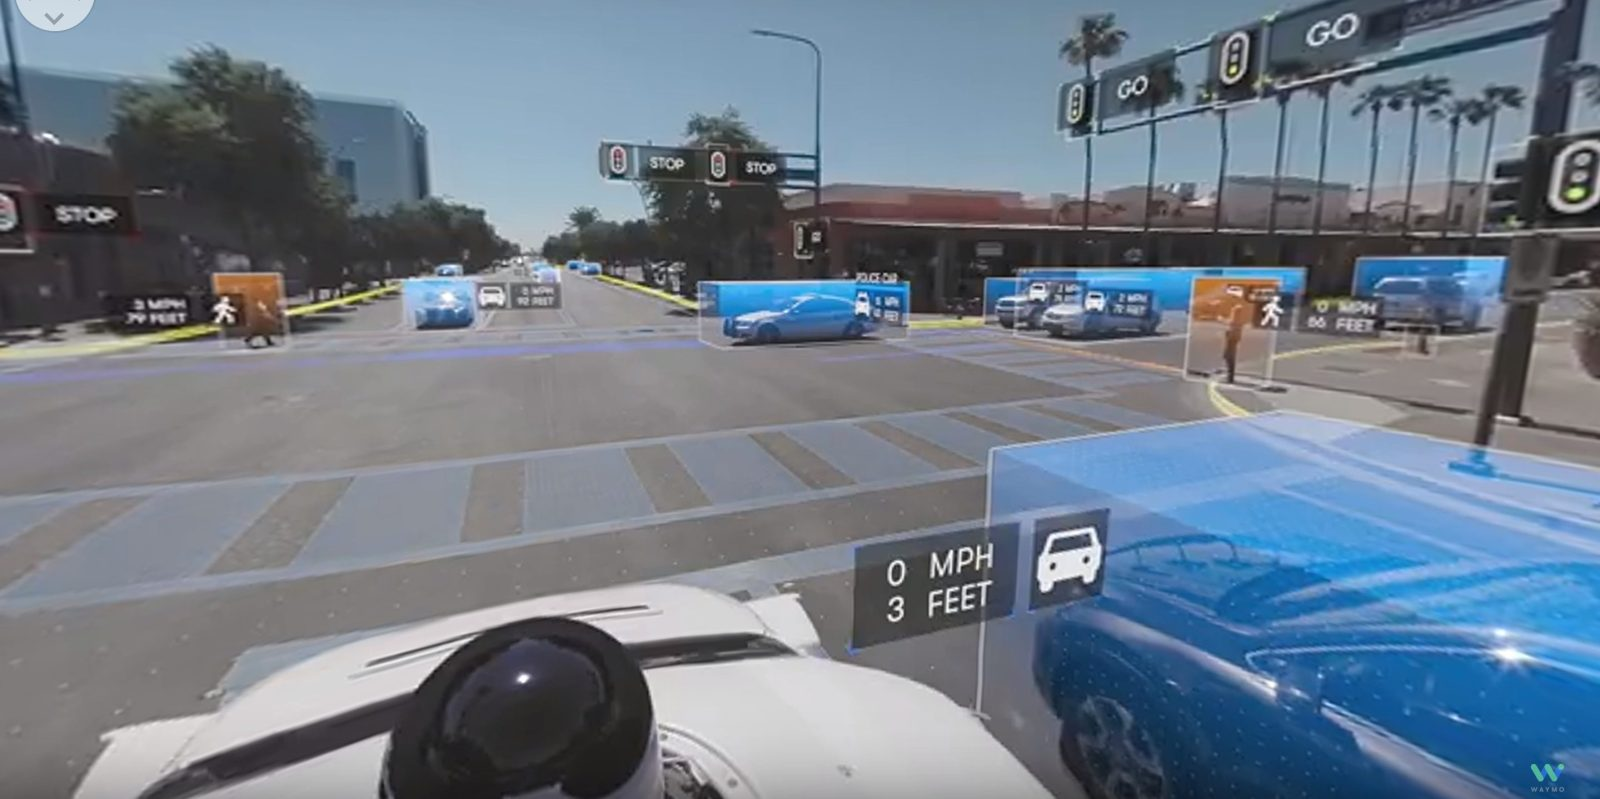 Waymo releases great comprehensive video showing what their self-driving van sees in real-time